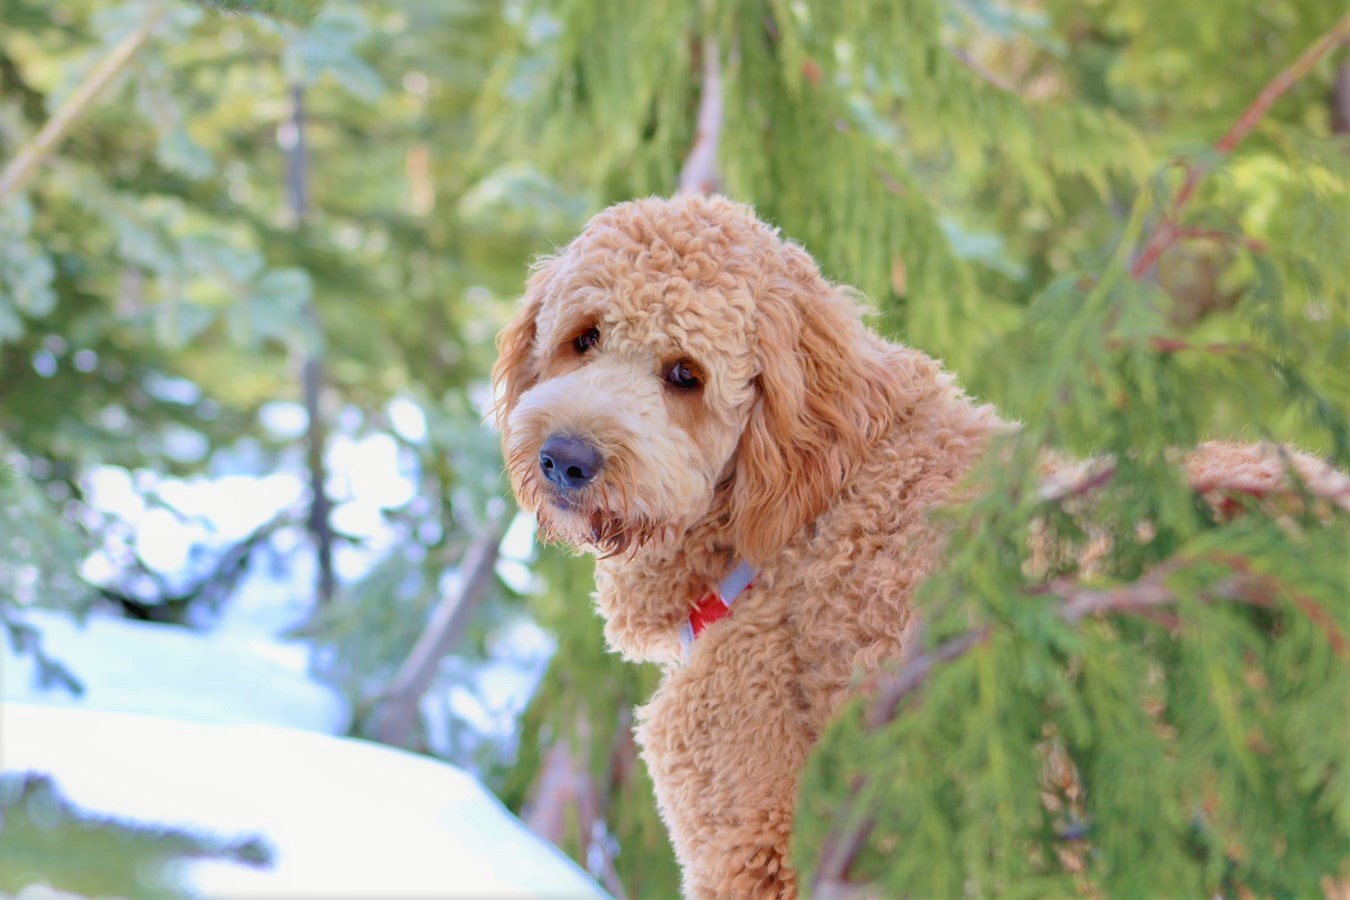 Training Royal Poodles for Hunting